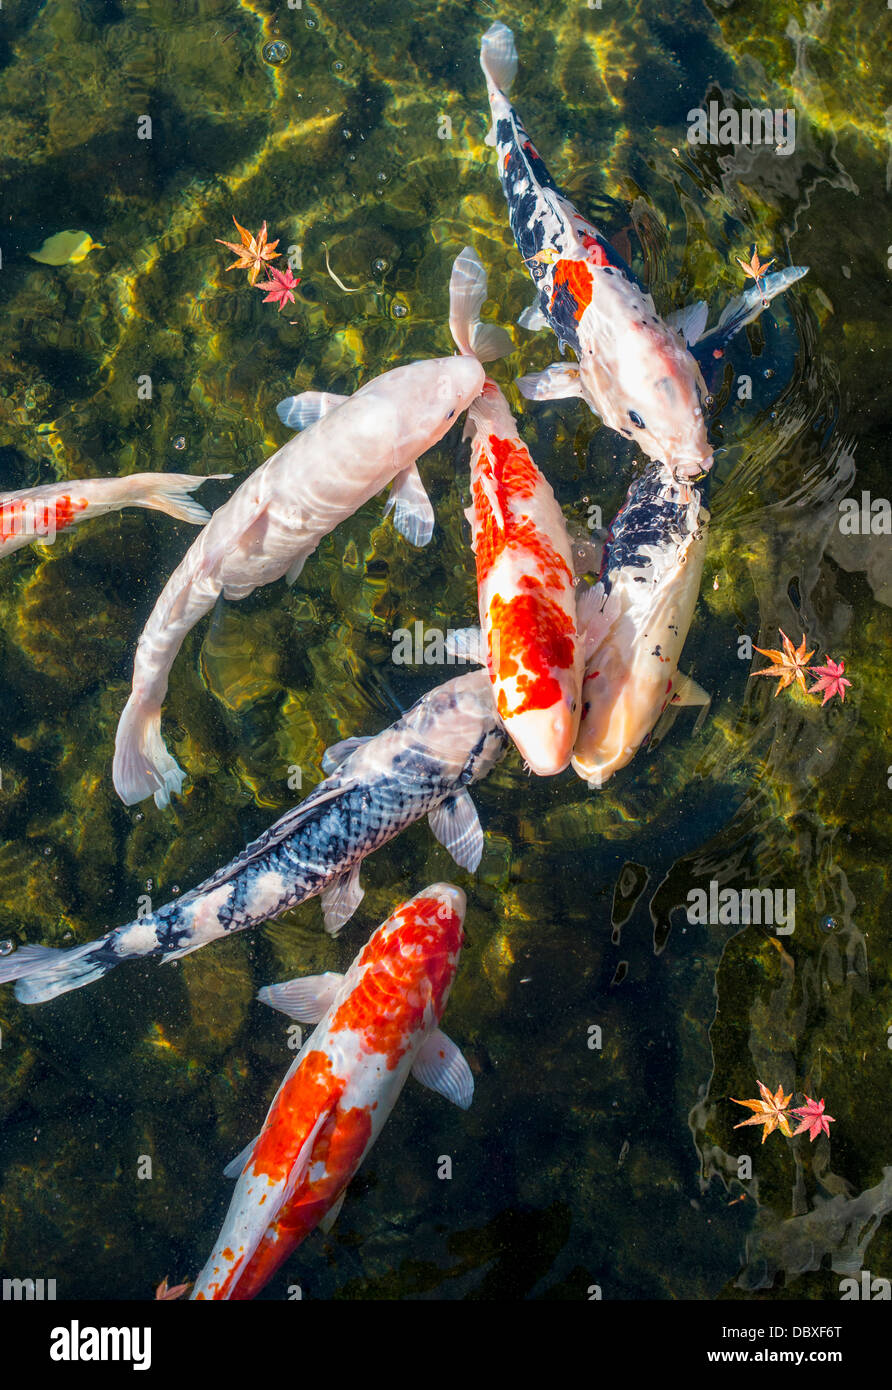 Koi pond in Nagoya, Japan. - Stock Image